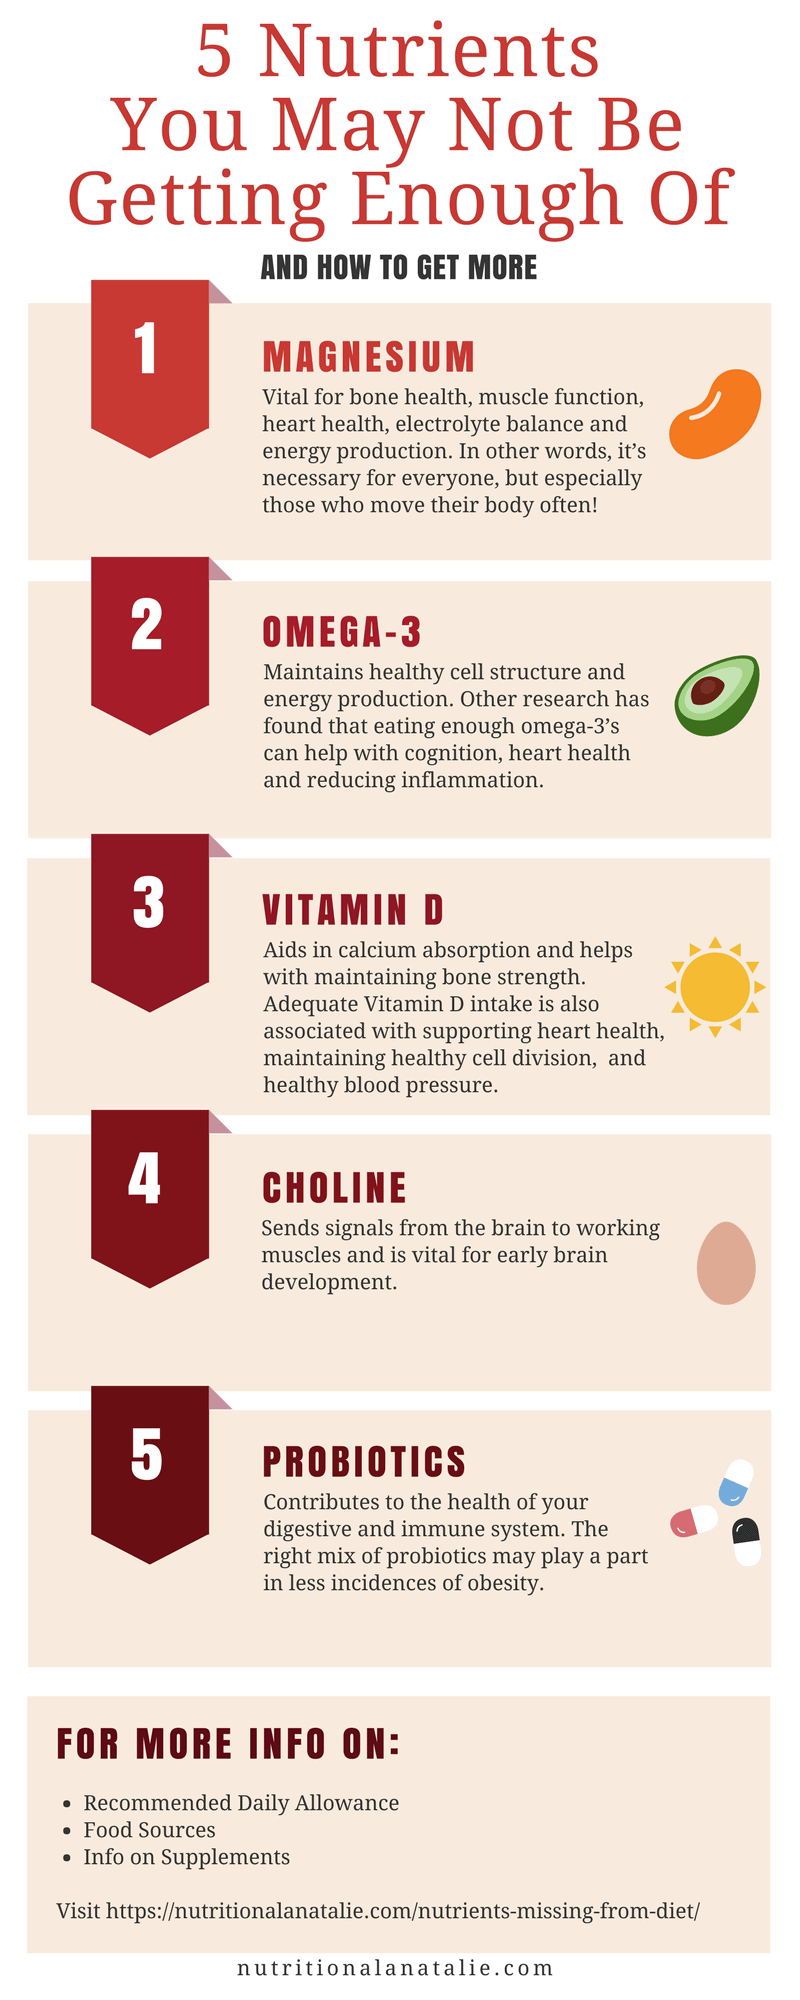 5 Nutrients You May Be Lacking From Your Diet. #ad #vitamins #nutrients #probiotics #vitamind #omega3 #healthydiet